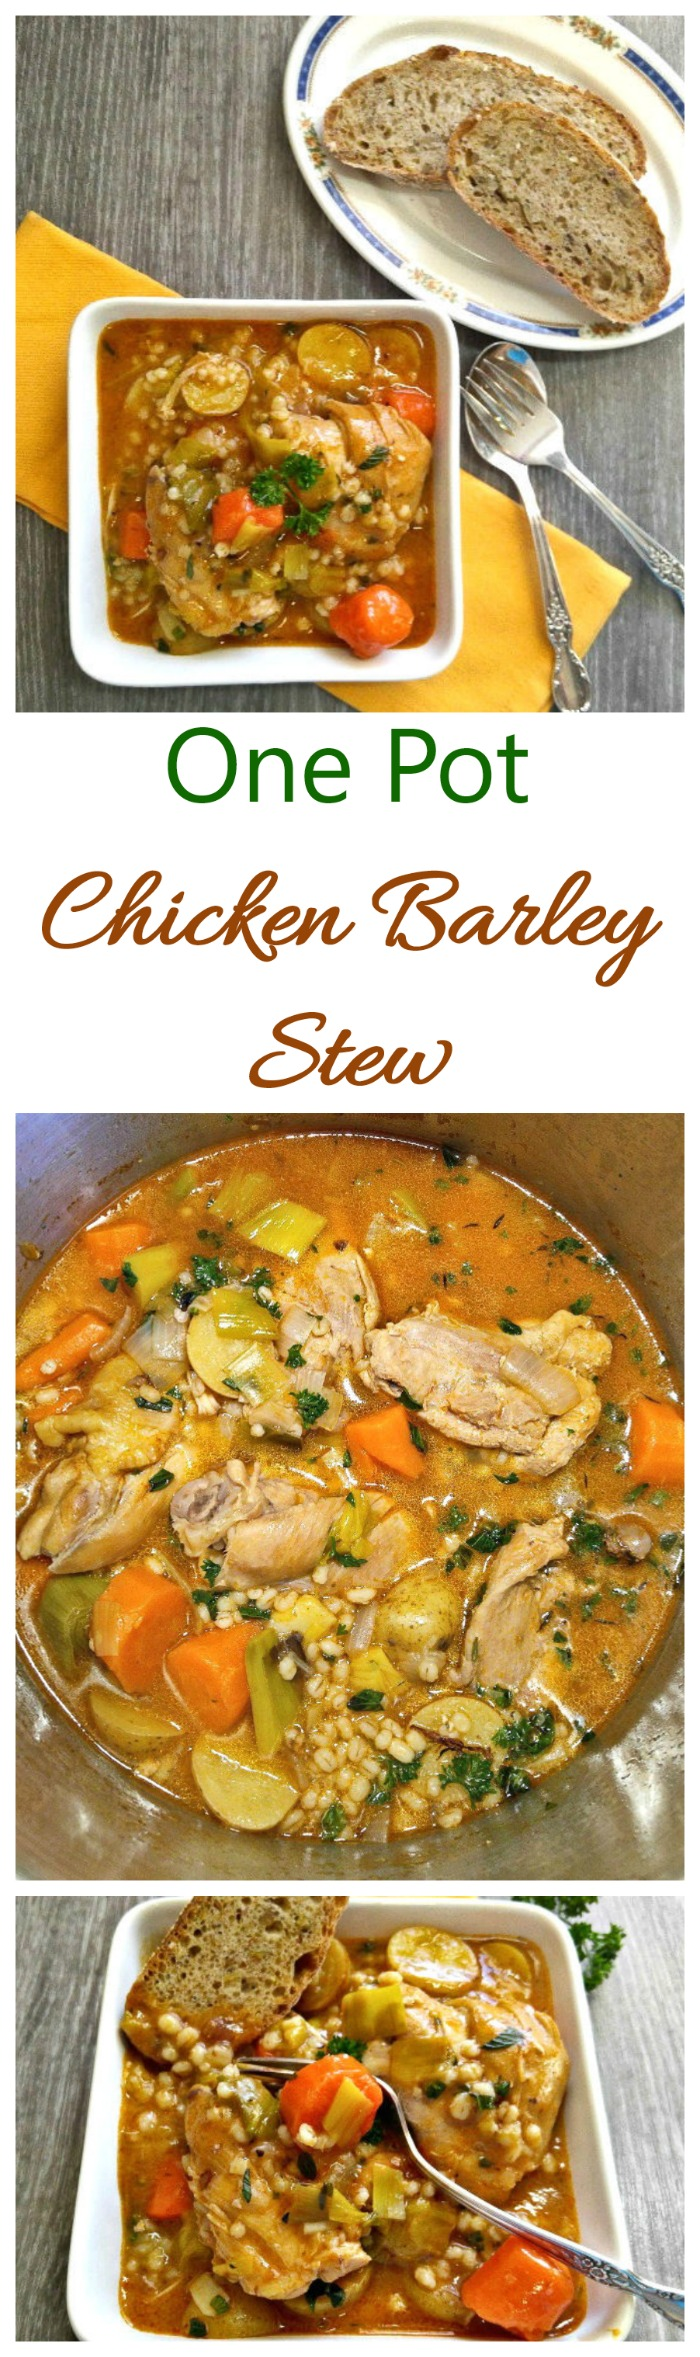 This one pot chicken barley stew is winter comfort food at its best. Serve it with crusty bread for a hearty and filling meal. #wintercomfortfood #chickenbarleystew